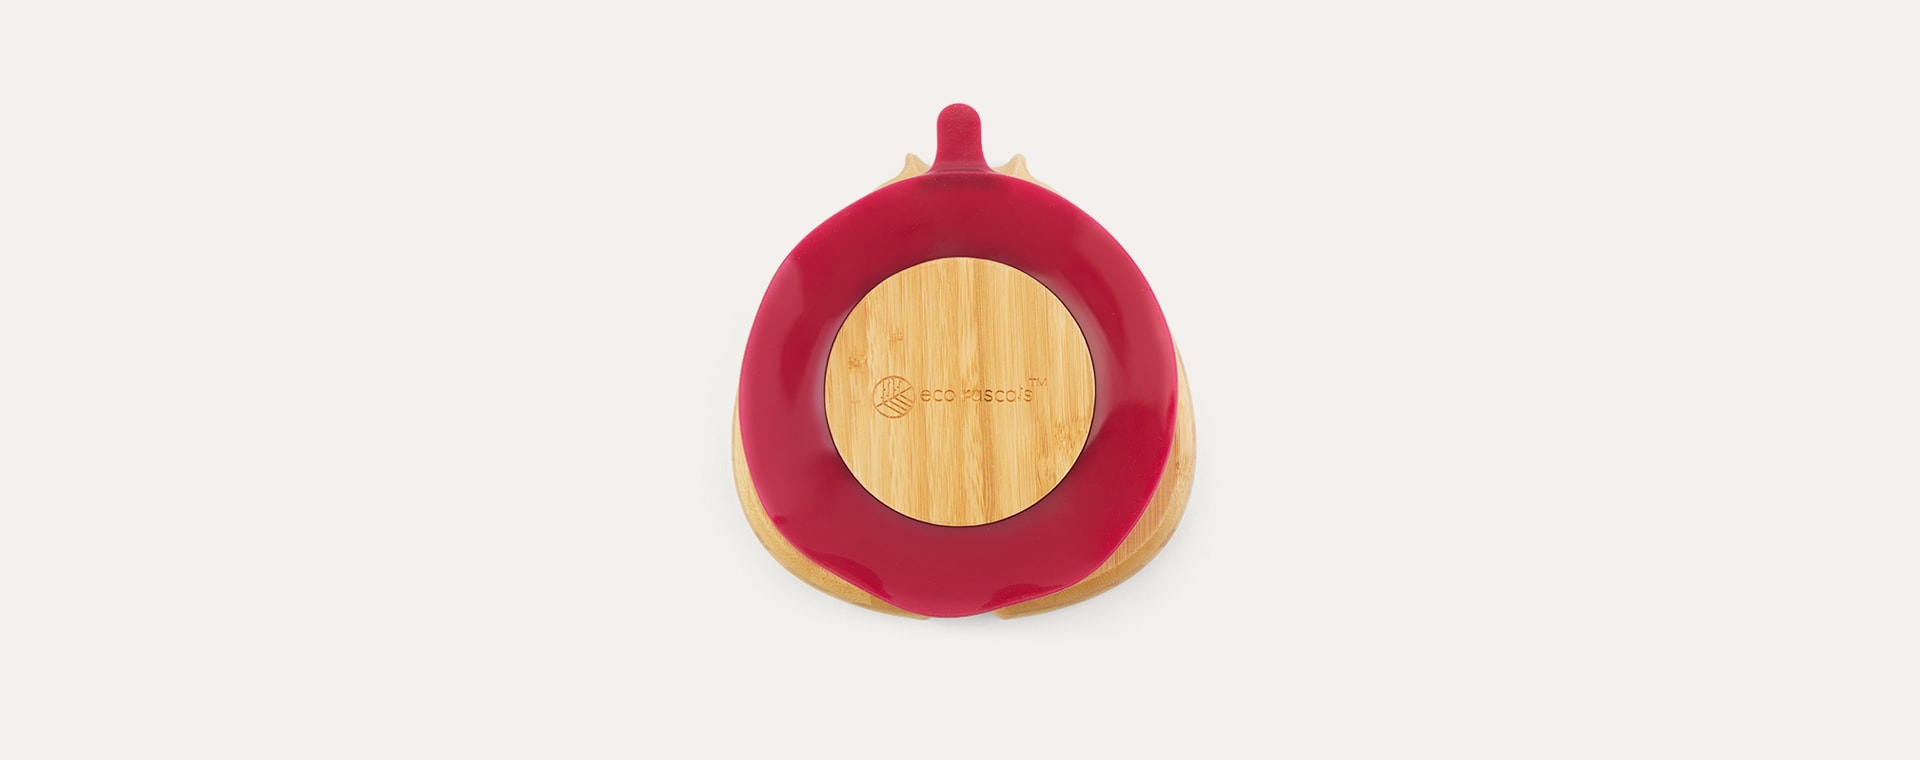 Red eco rascals Bamboo Suction Ladybird Plate